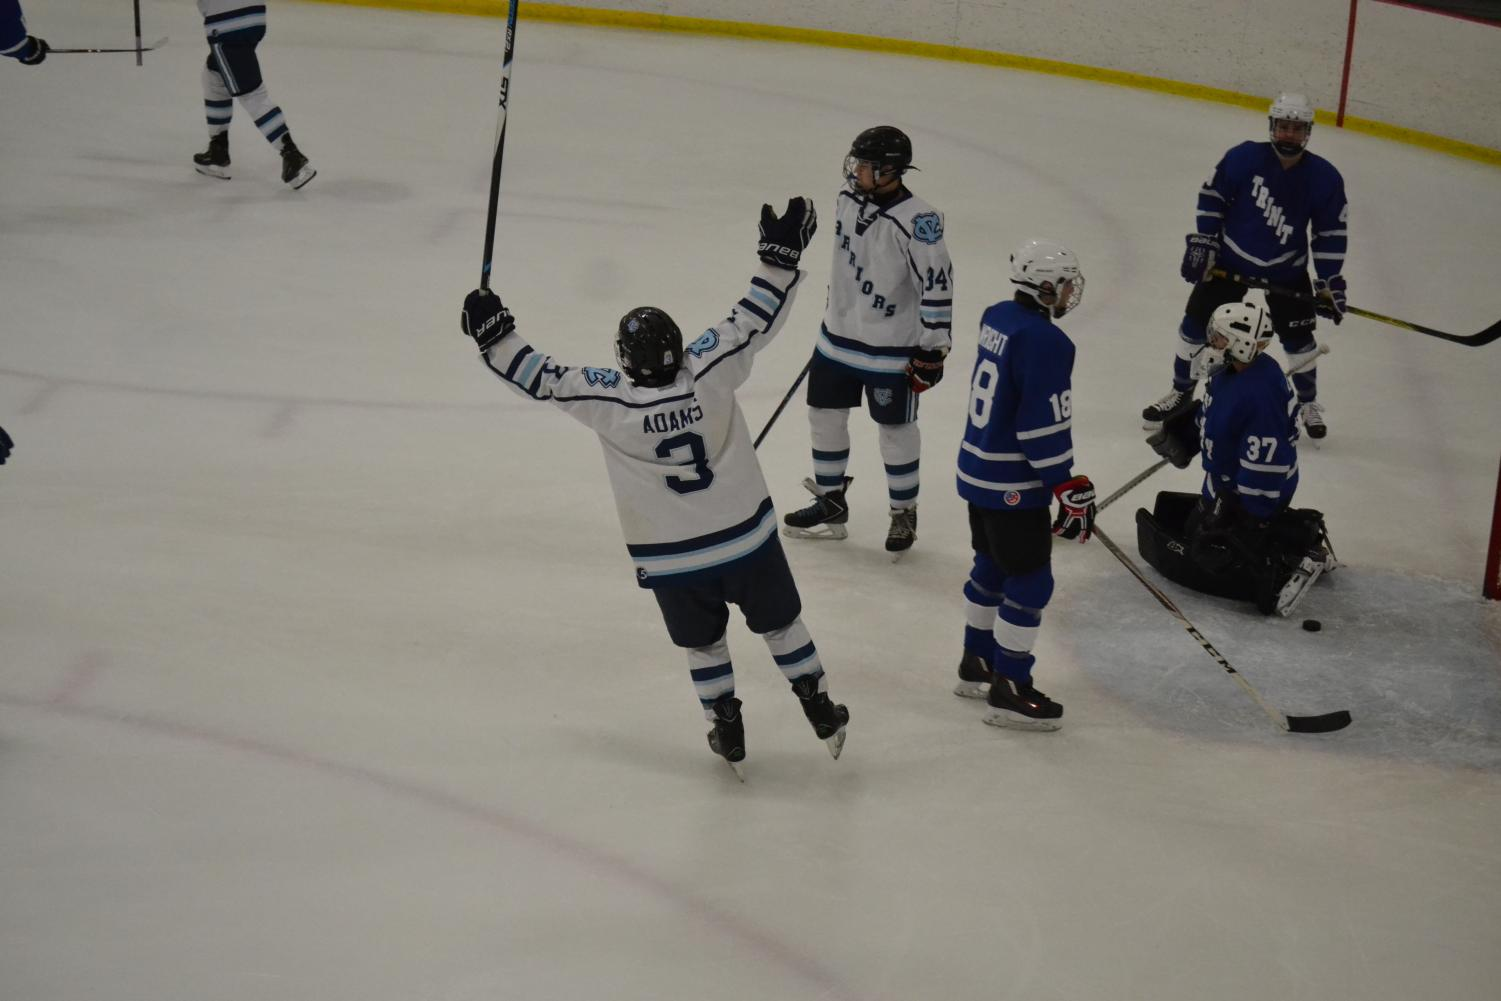 Senior Riley Adams celebrates with his arms in the air after he assists on a goal.